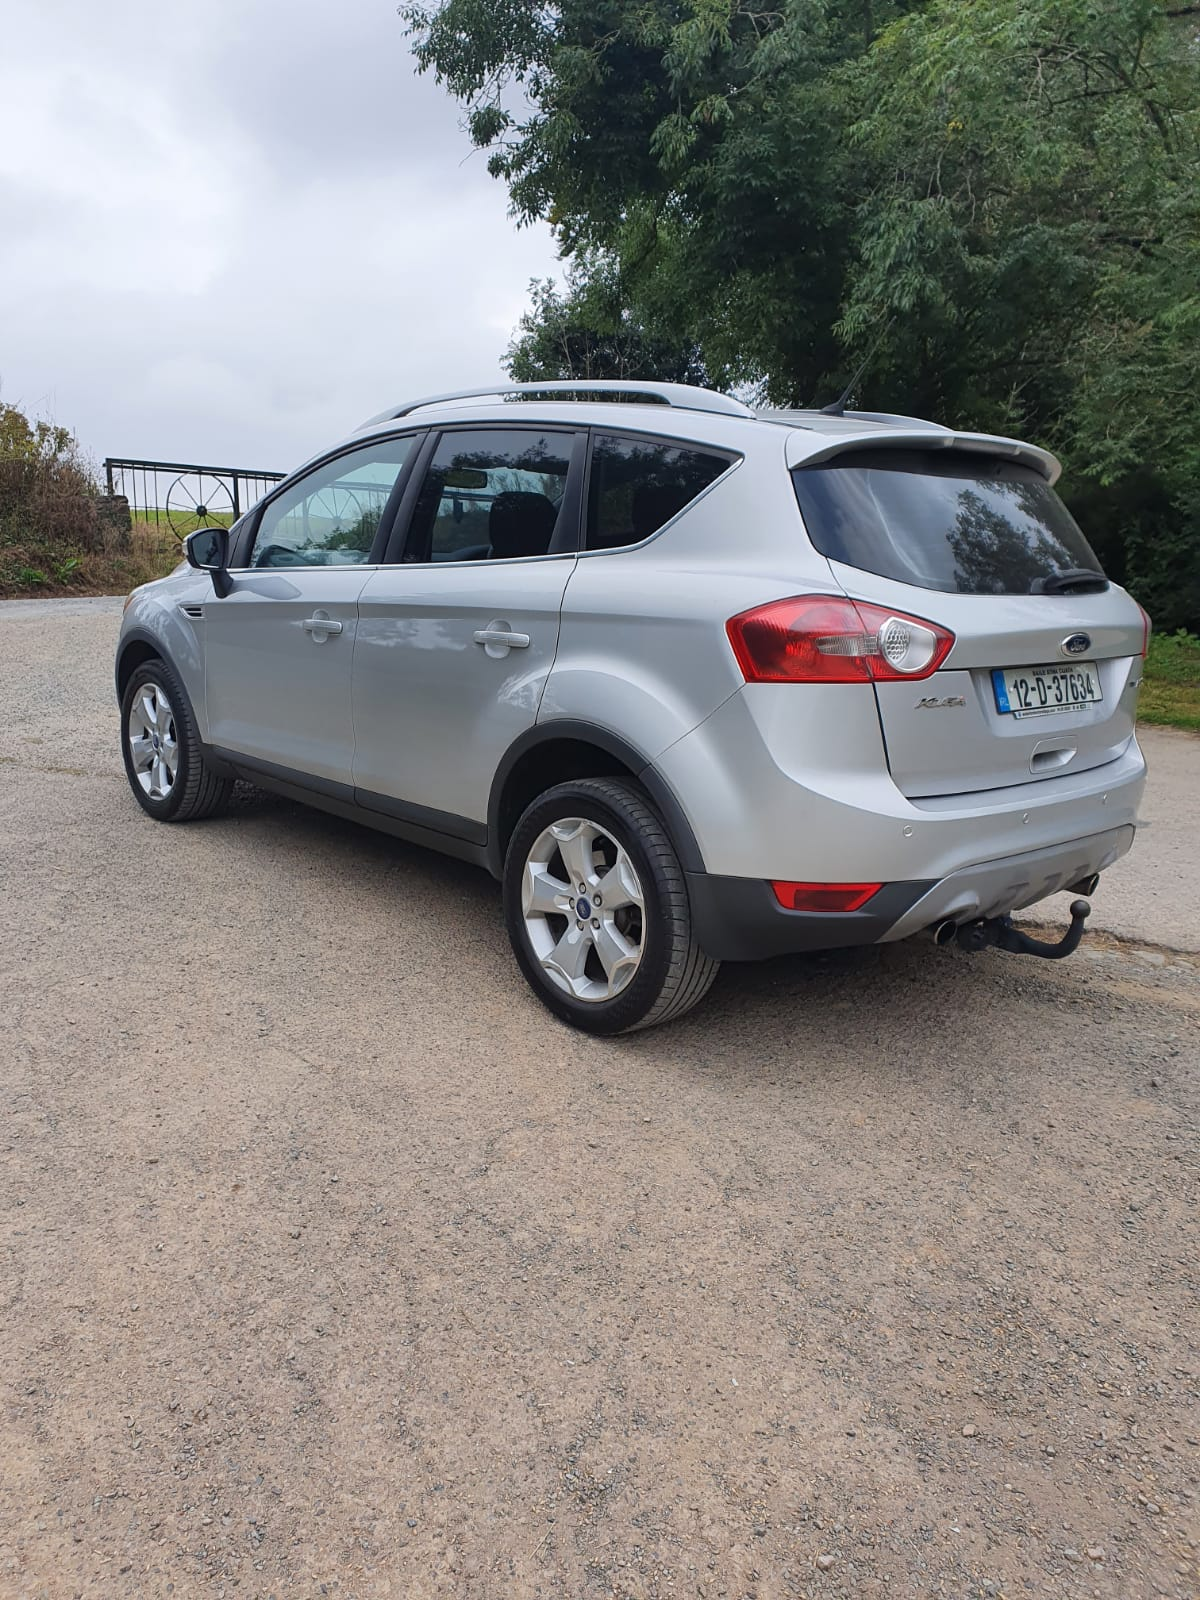 Used Ford Kuga 2012 in Wexford